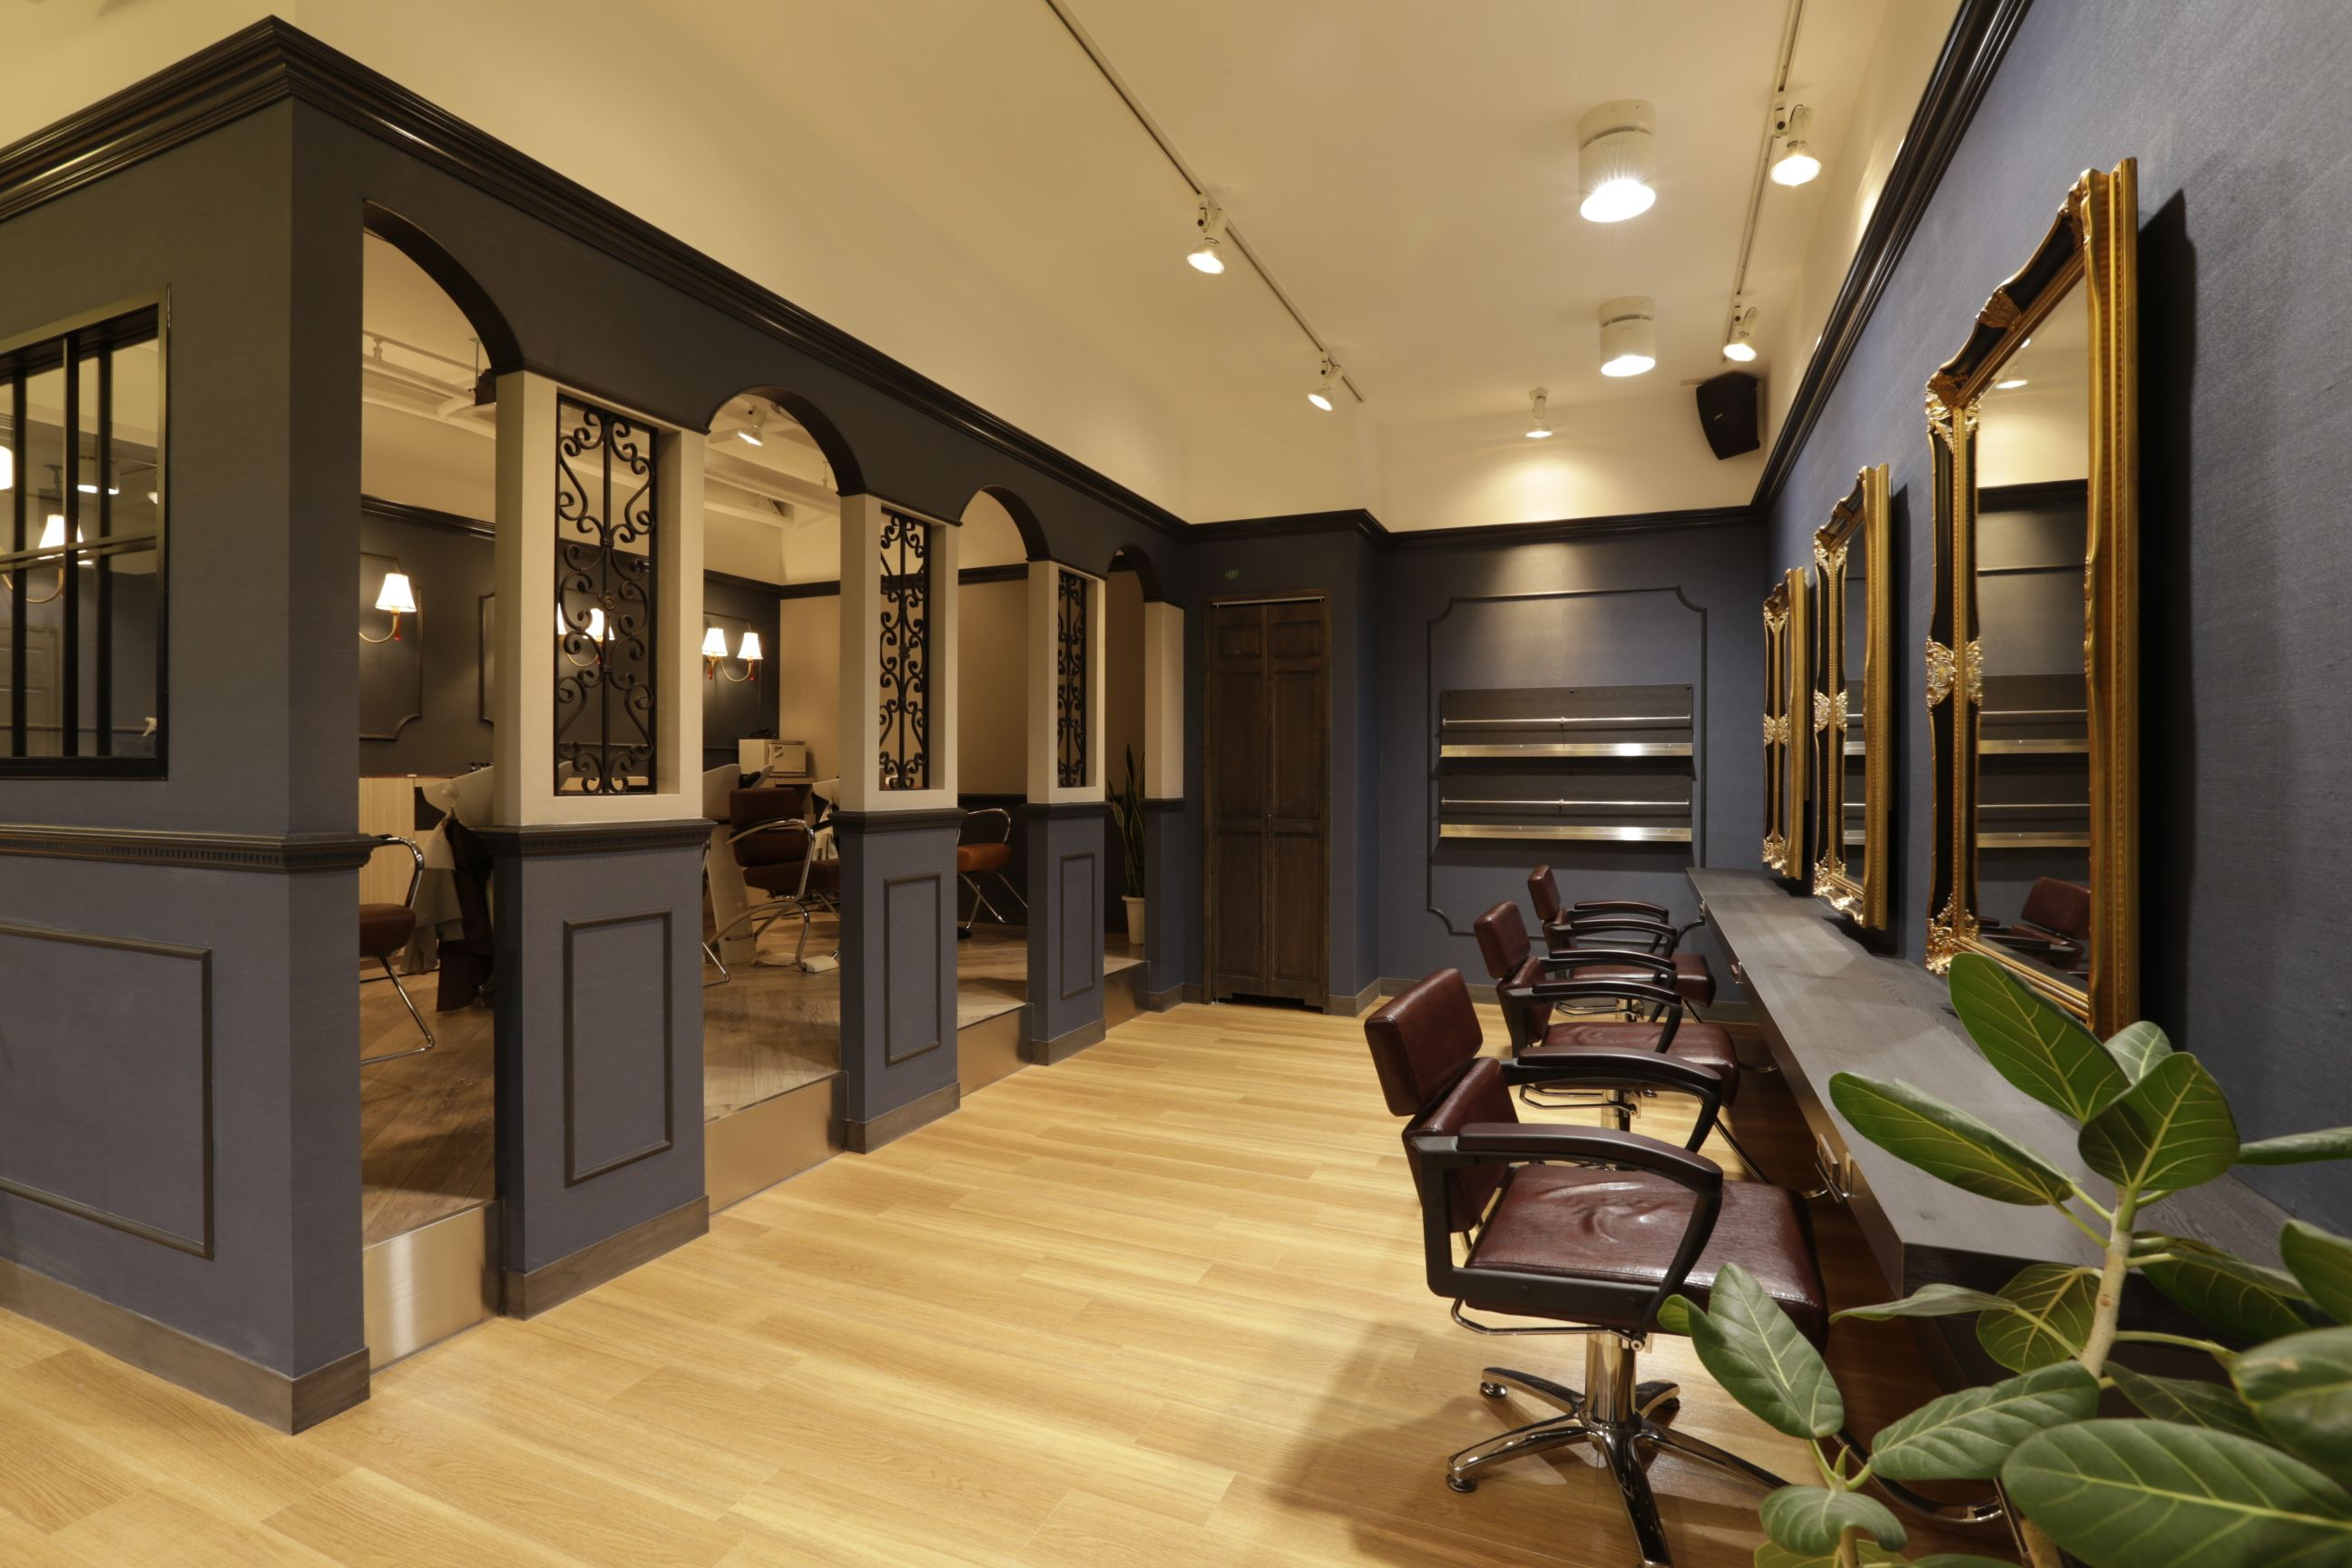 Beauty salon interior design ideas chairs mirrors for Interieur design salon